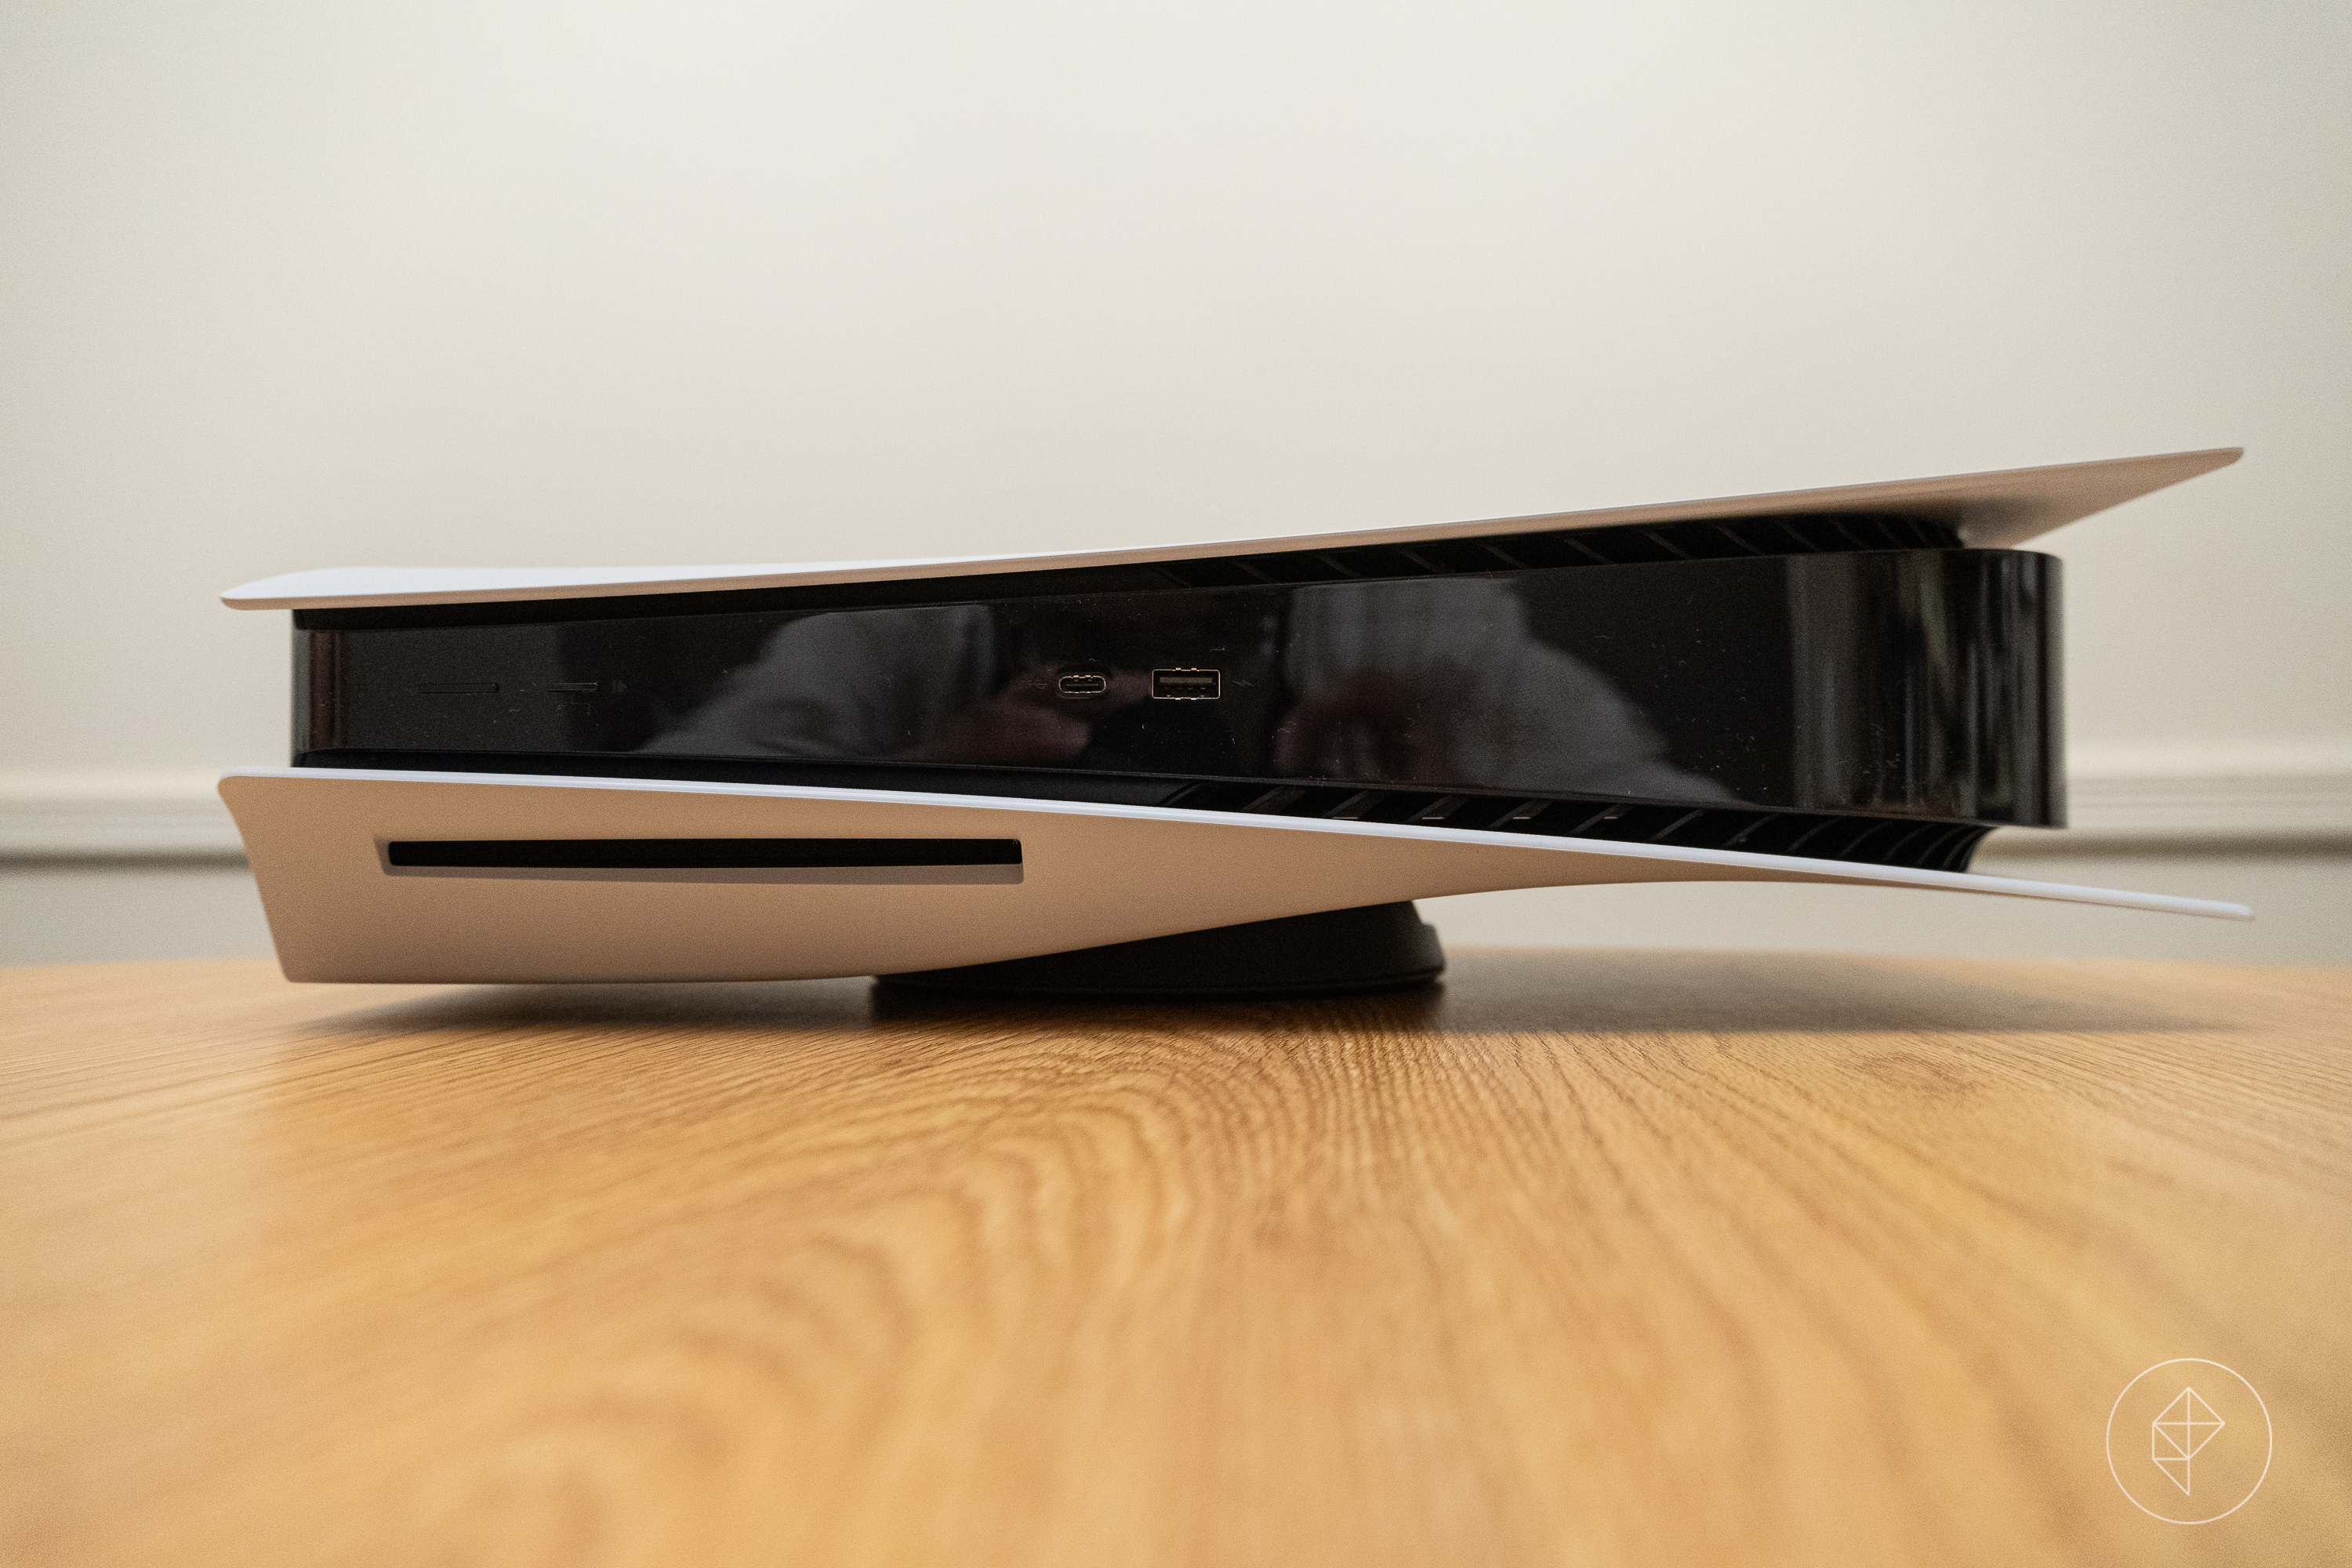 the PlayStation 5 lying in its horizontal orientation on a wooden table